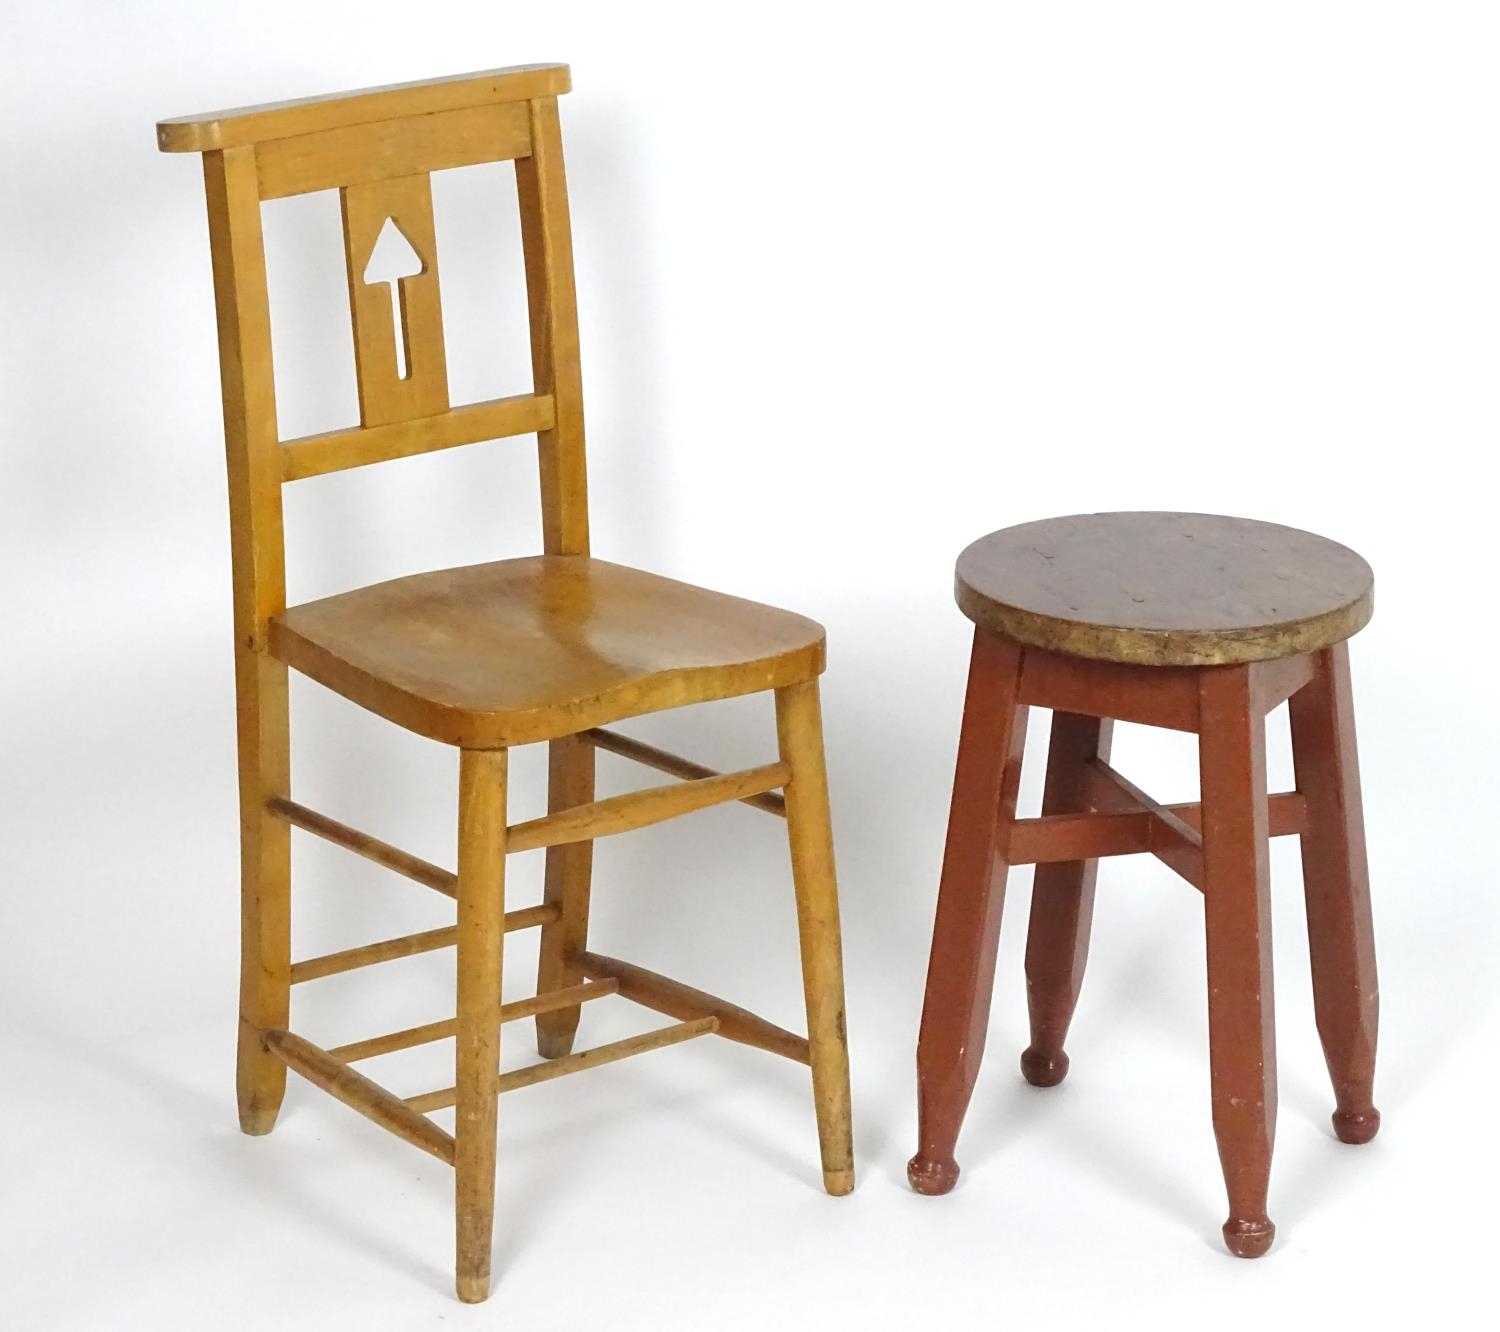 An early 20thC pine stool together with a chair having a shaped top rail and pierced back splat.